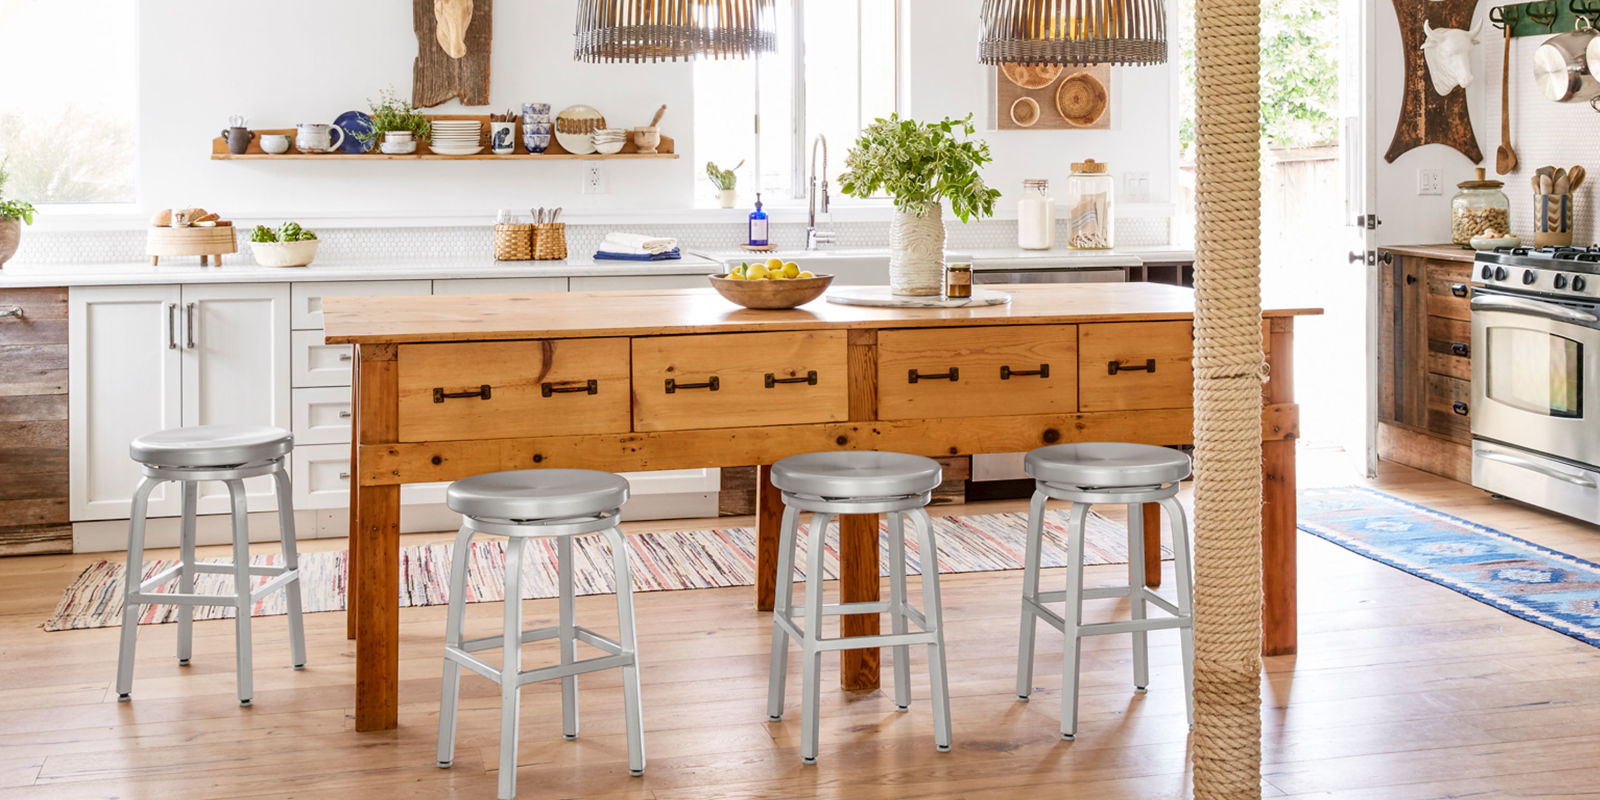 50 Best Kitchen Island Ideas  Stylish Designs for